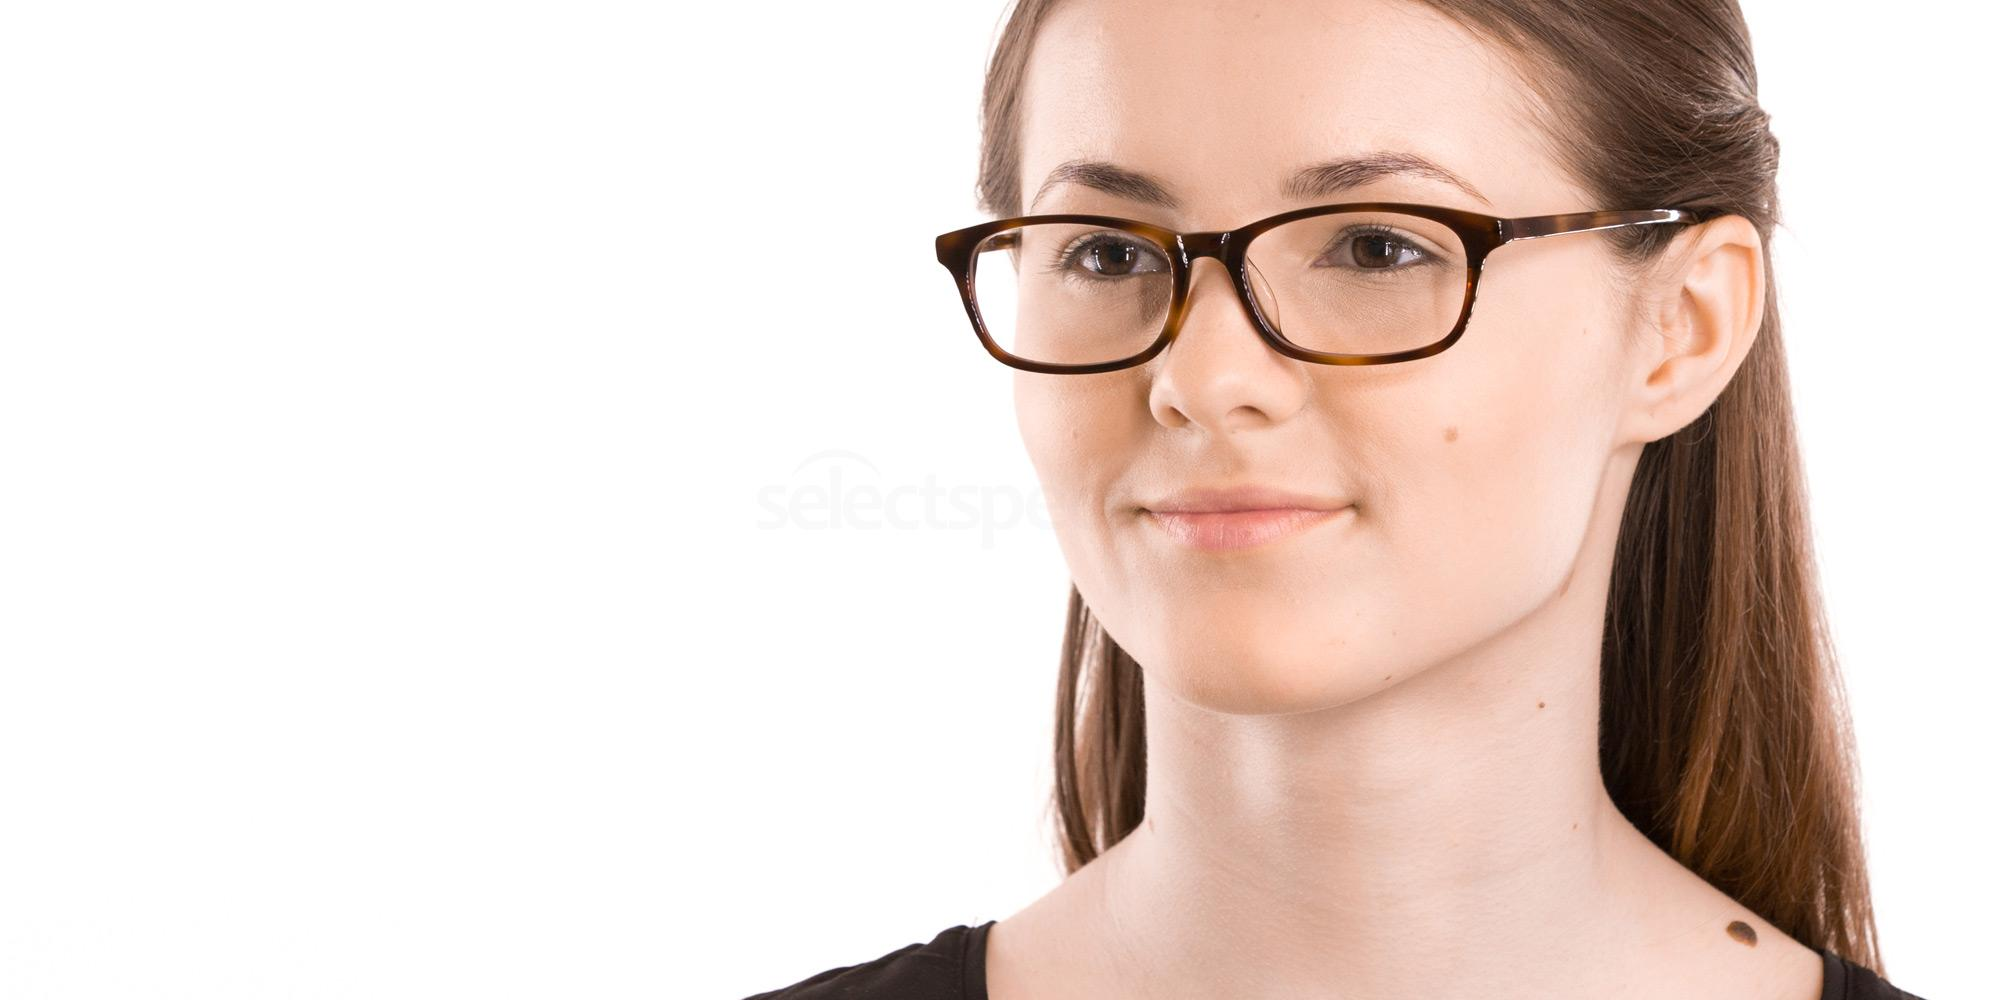 girl-wearing-glasses-hallmark-selectspecs-budget-glasses